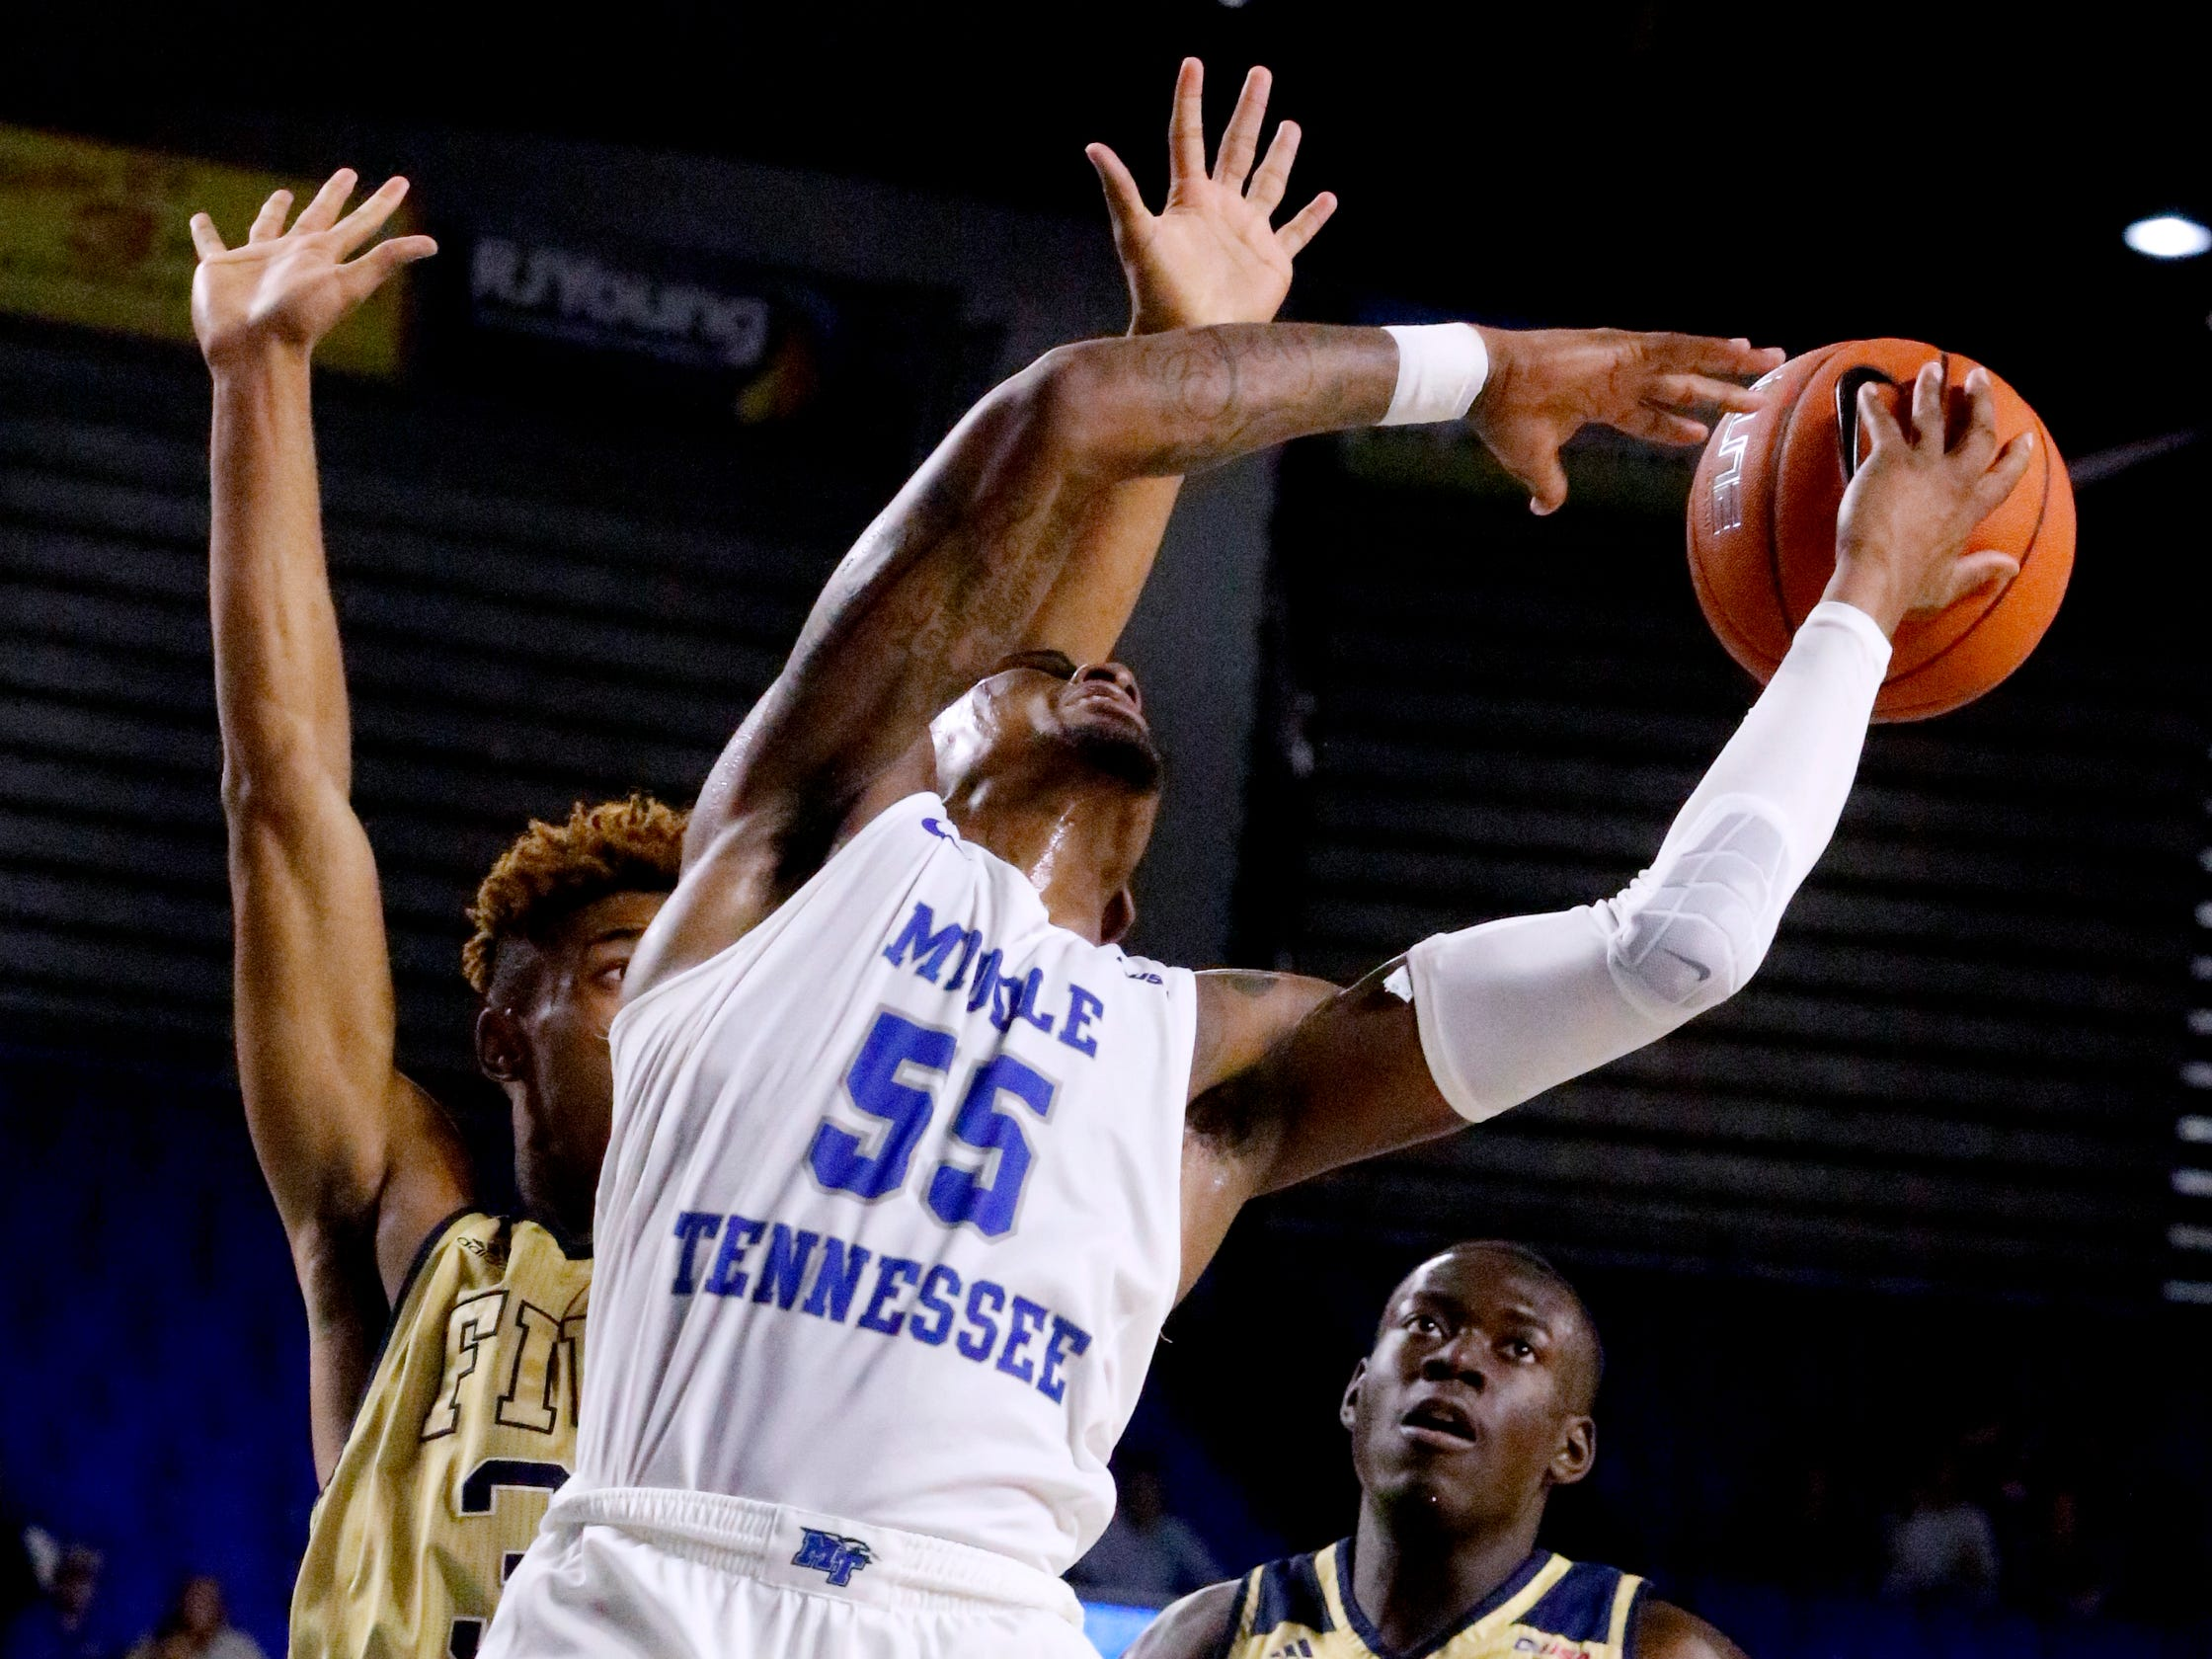 MTSU's guard Antonio Green (55) tries to grab the ball back after he looses it while going up for a shot s FIU's guard Trejon Jacob (3) guards him on Thursday Jan. 3, 2019, at MTSU.